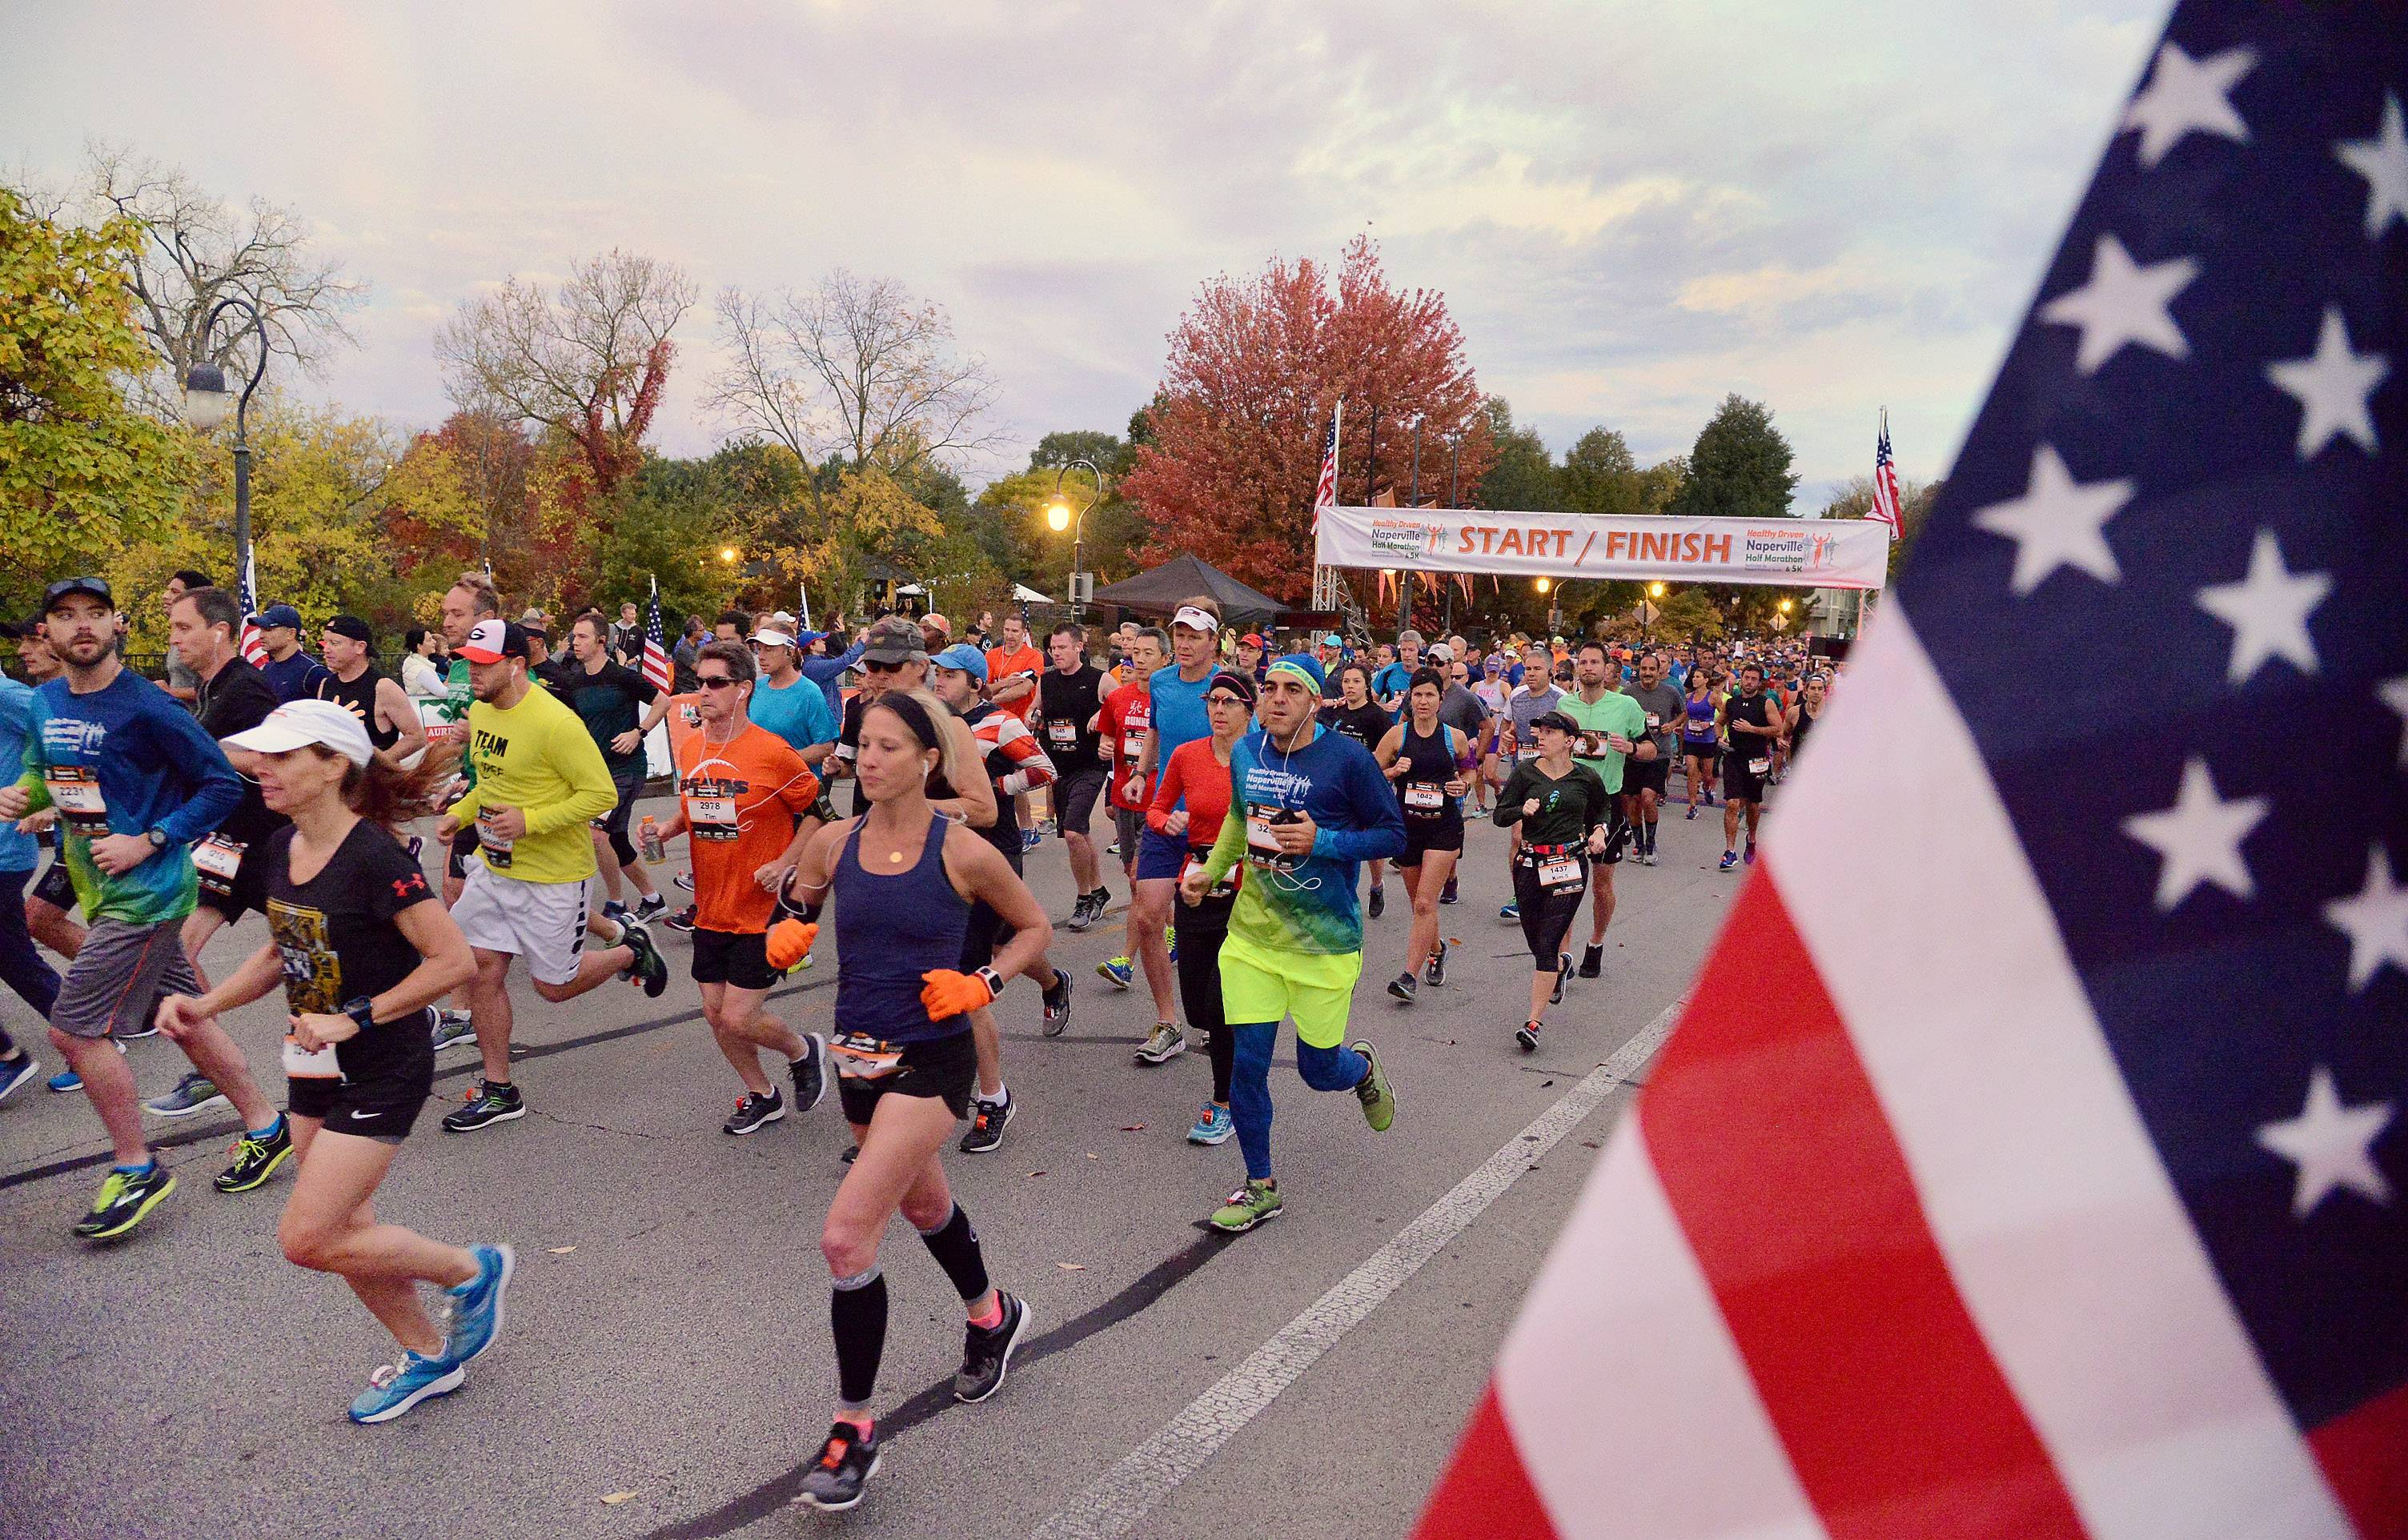 Thousands of participants in the Healthy Driven Naperville Half Marathon take off Sunday morning from the starting line on Eagle Street.